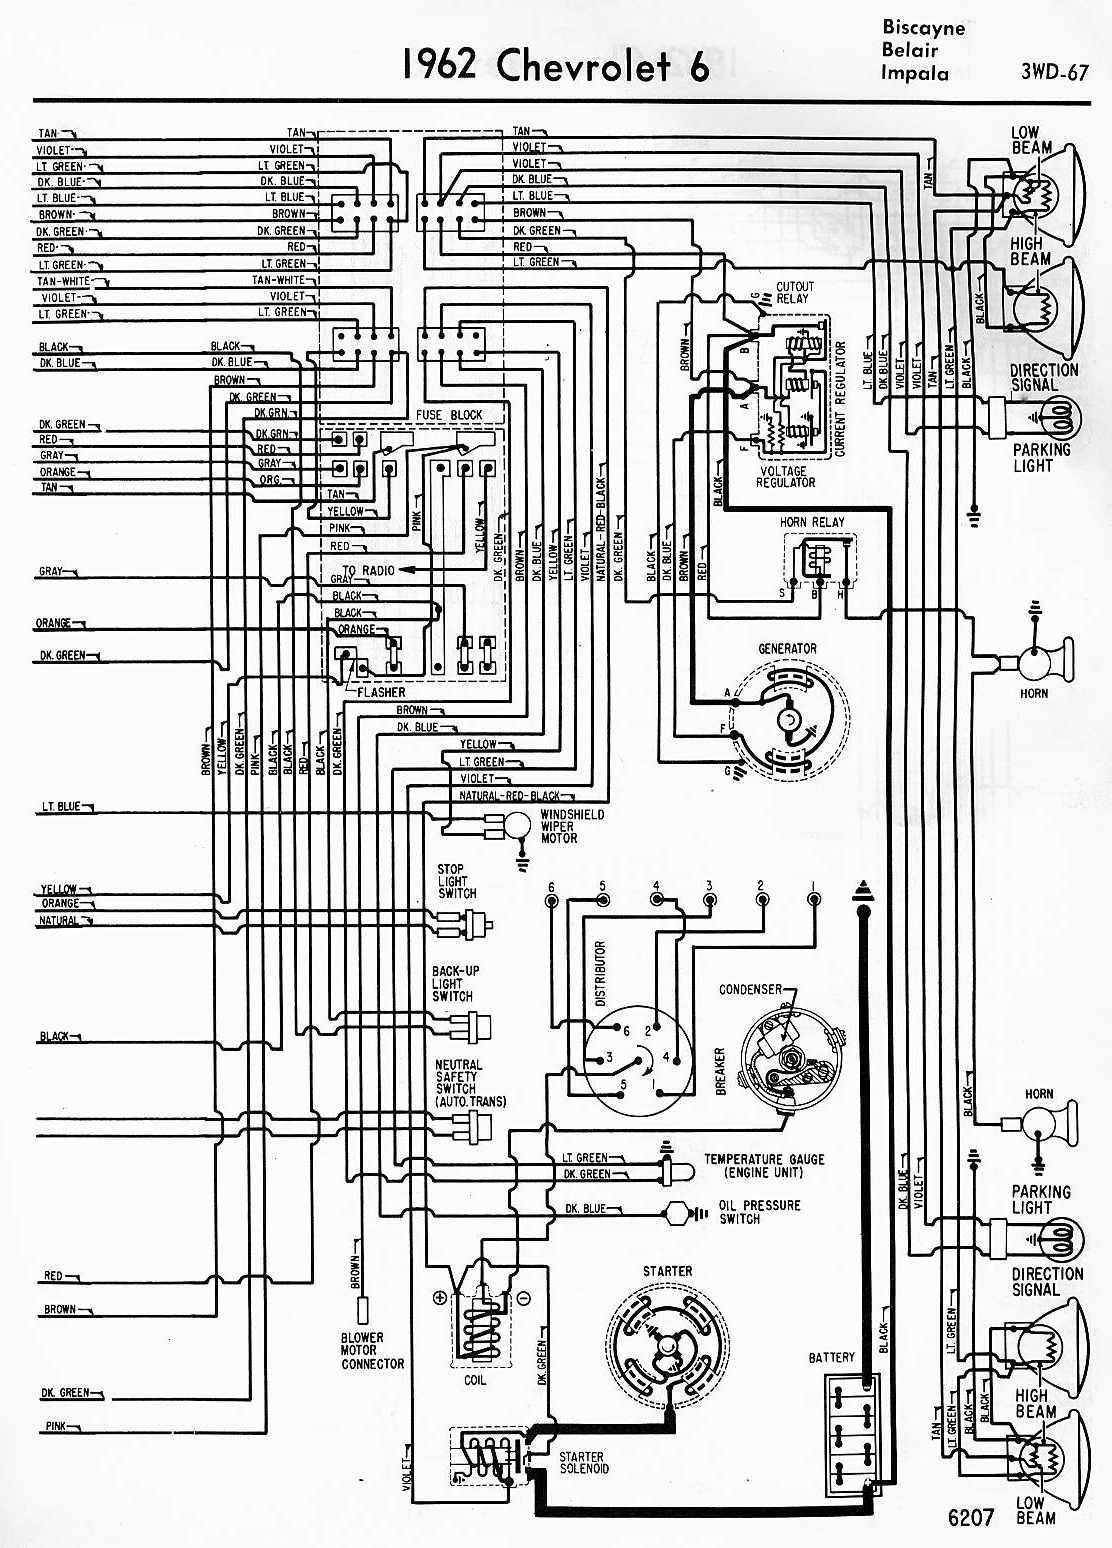 small resolution of 1966 chevrolet impala wiring diagram free picture wiring diagram rh 1 16 jacobwinterstein com 2002 impala